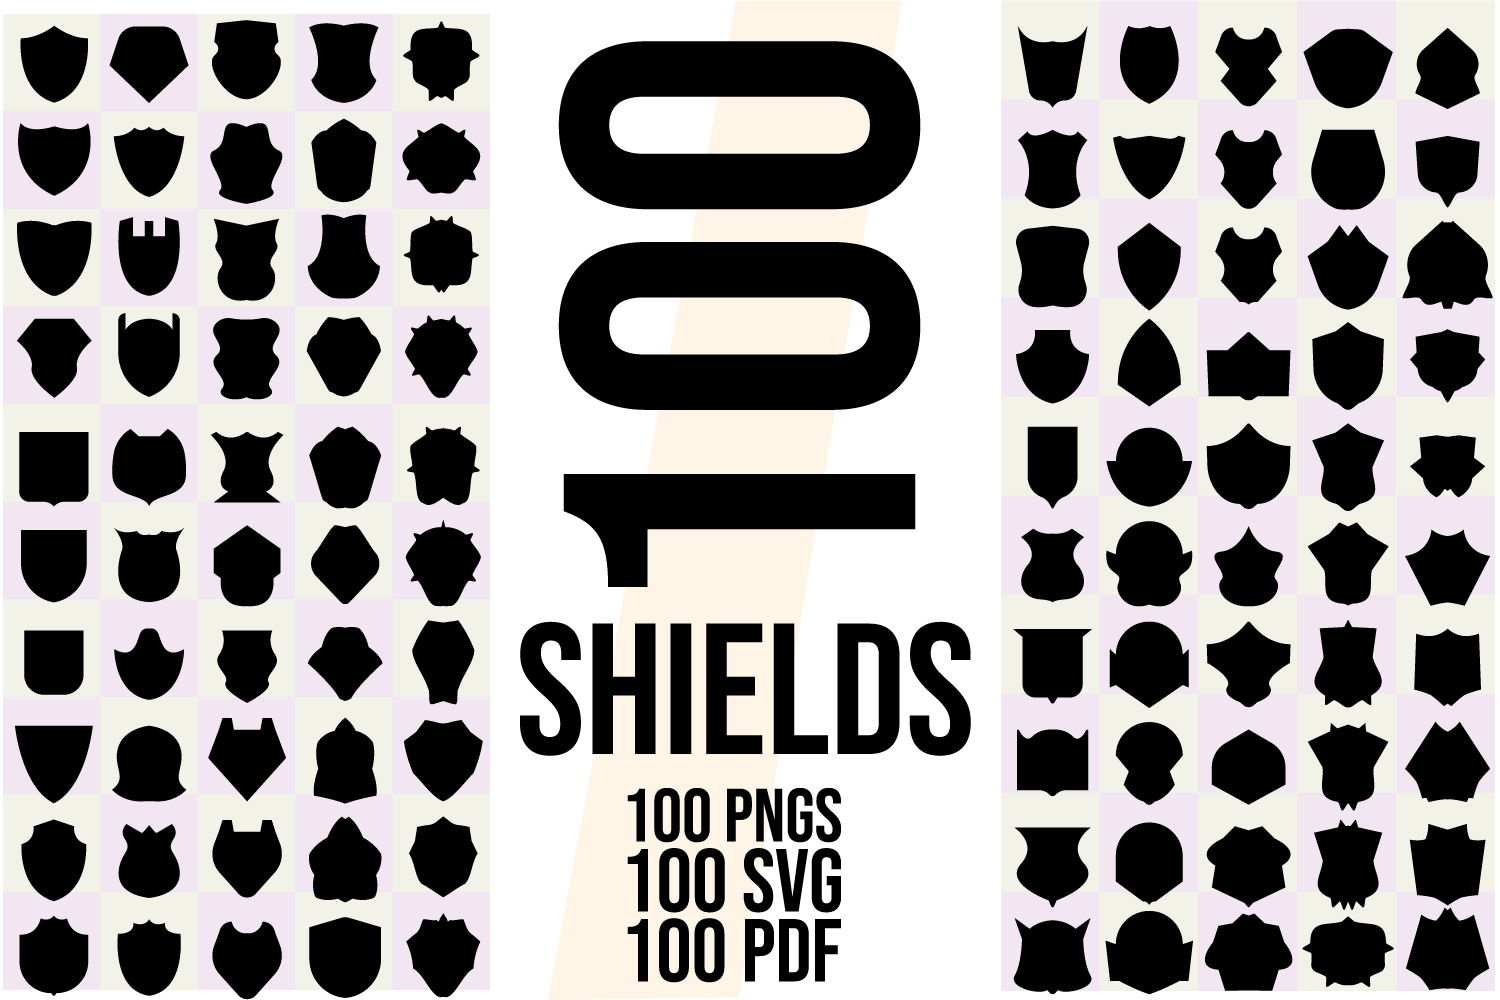 200 Shields and Frames SVG, AI, EPS, PDF, PNG example image 2